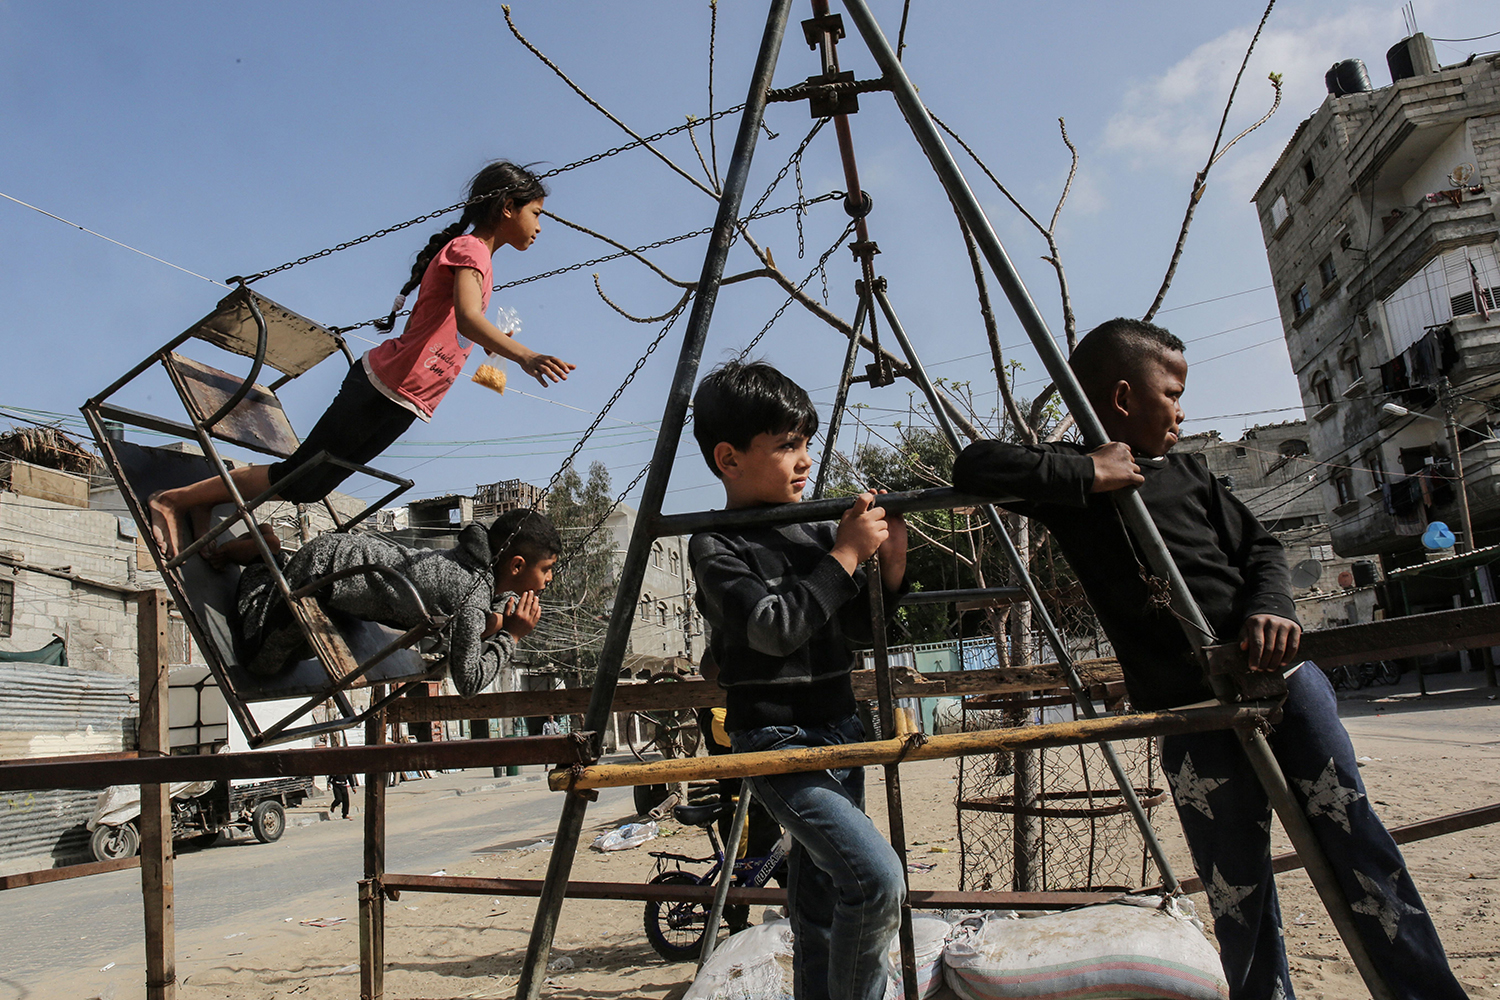 Palestinian children play at the Rafah refugee camp in the southern Gaza Strip on April 8. SAID KHATIB/AFP via Getty Images